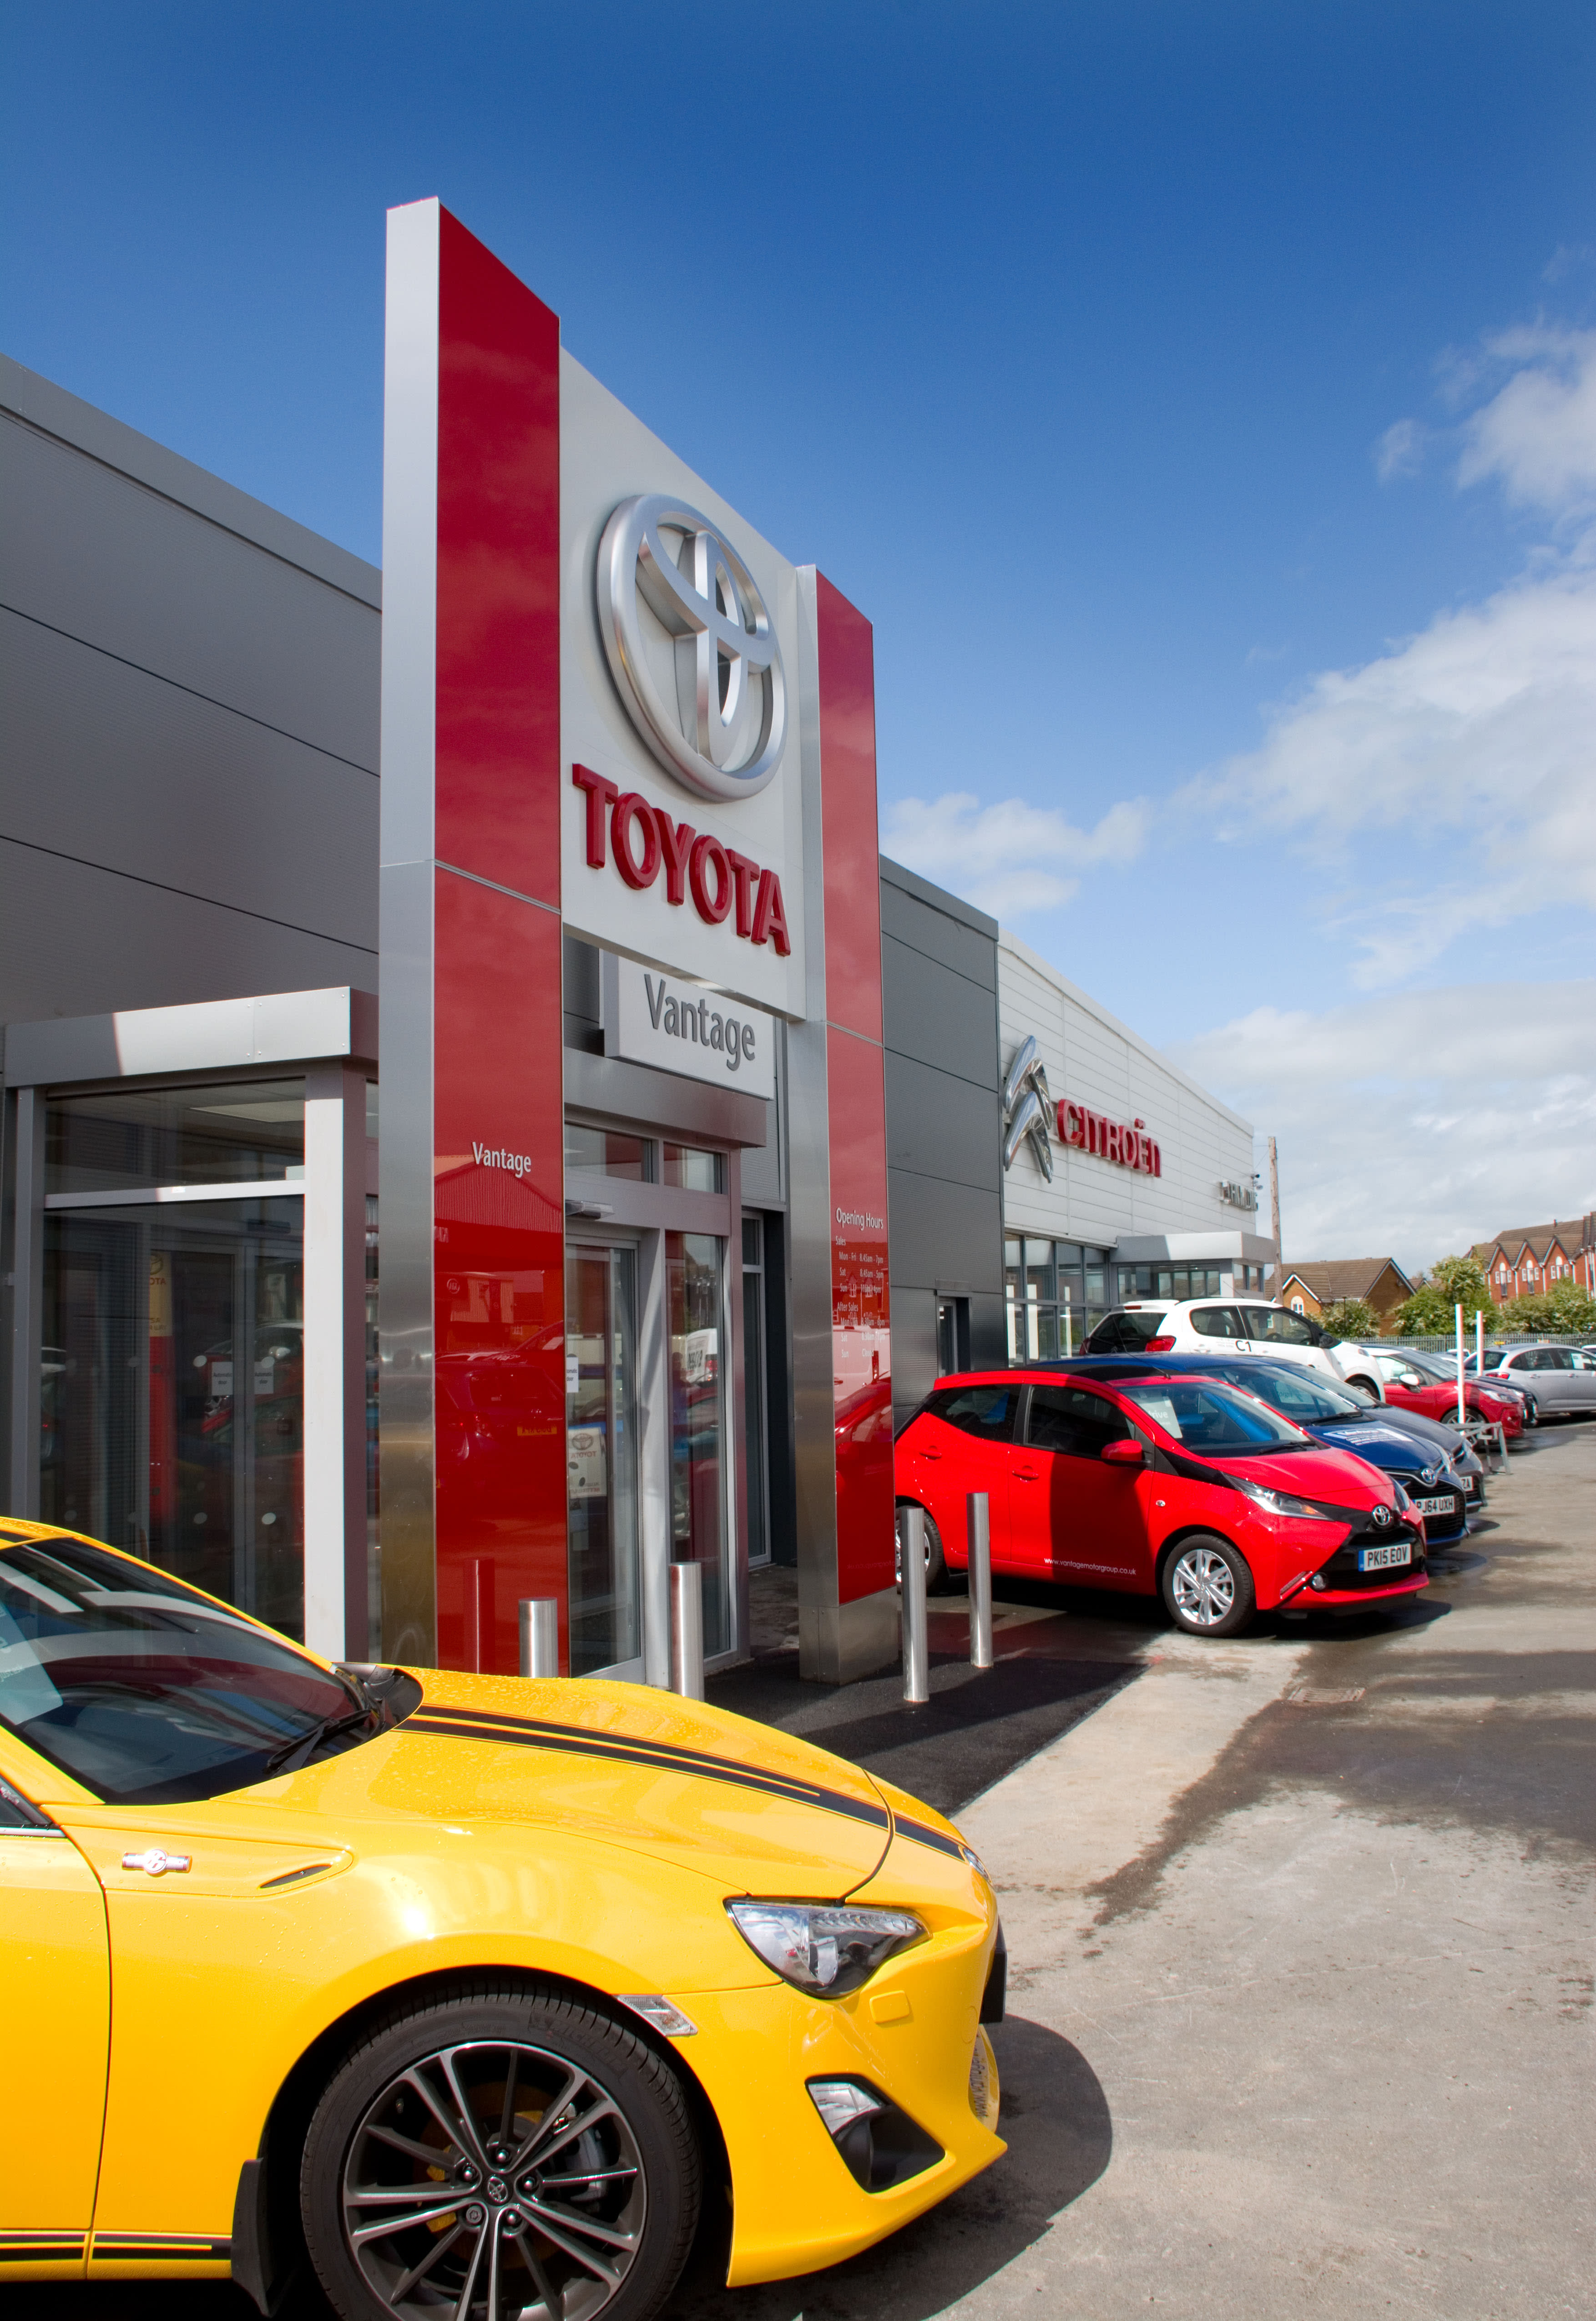 toyota aecom press plant ngage shop metal sheet the of media drives an section durban stuart at shaping in expansion is automotive